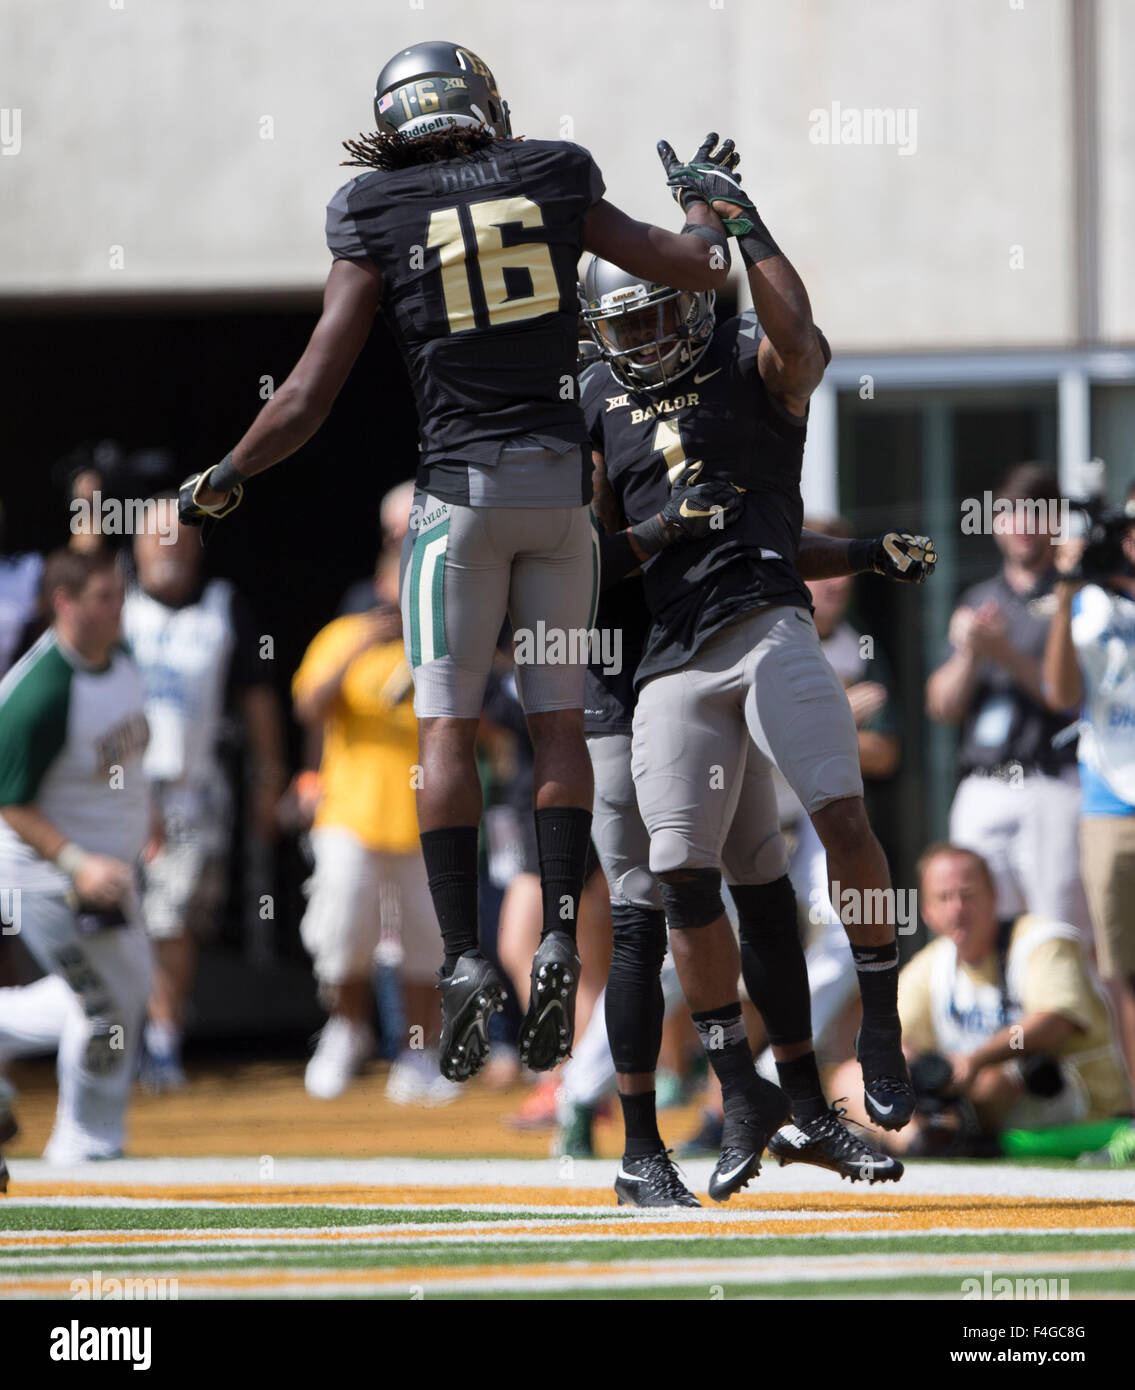 Waco, Texas, USA. 17th Oct, 2015. Baylor Bears Davion Hall (16) and Corey Coleman (1) celebrate touchdown during Stock Photo